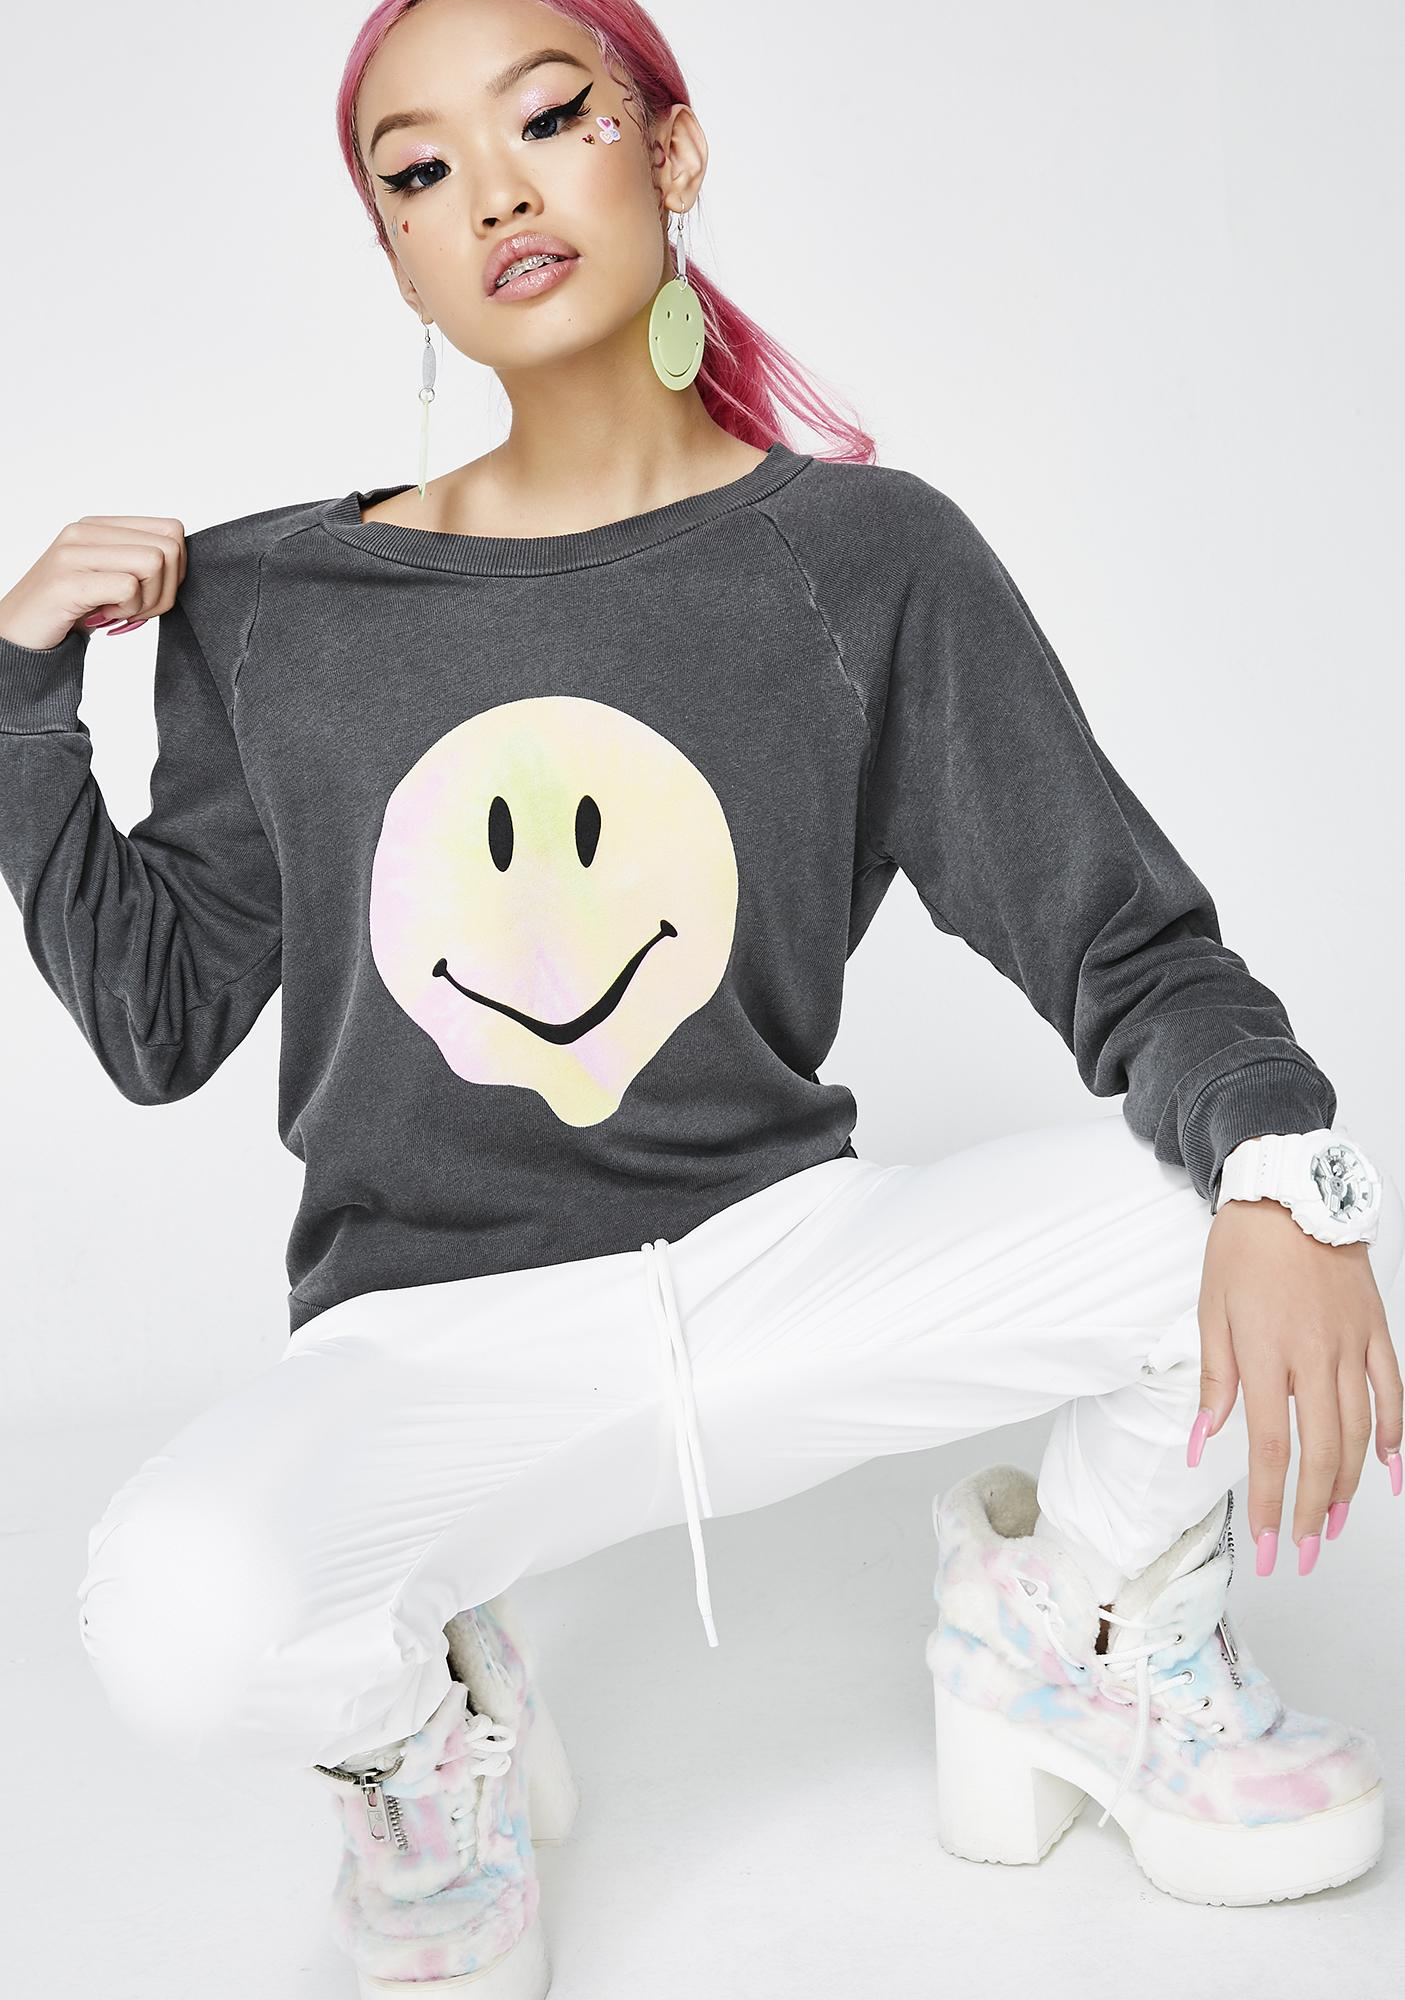 Wildfox Couture Psychedelic Smiley Sweatshirt